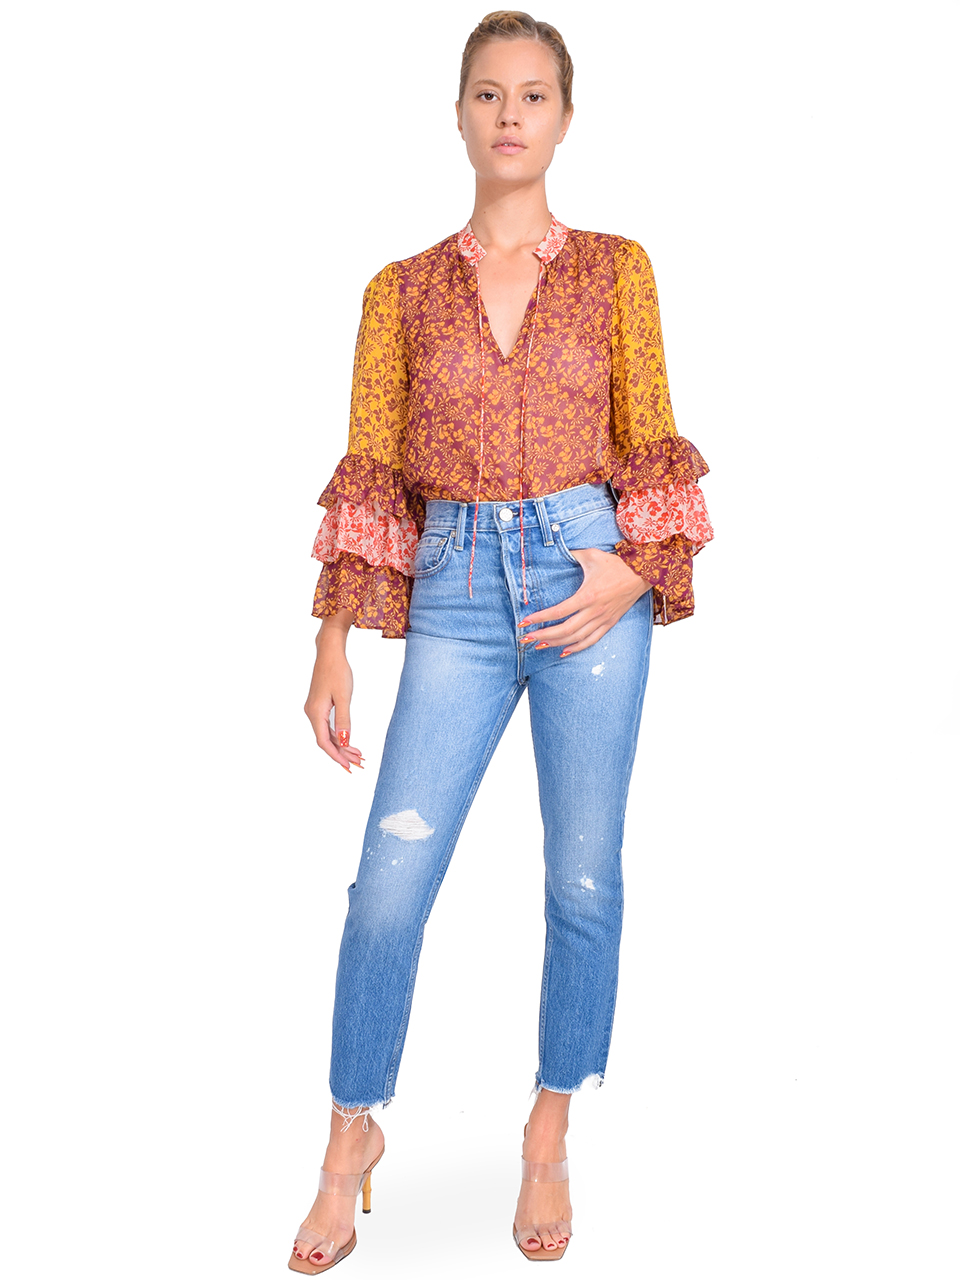 Alice + Olivia Justice Ruffle Sleeve Blouse in Rome Floral Full Outfit